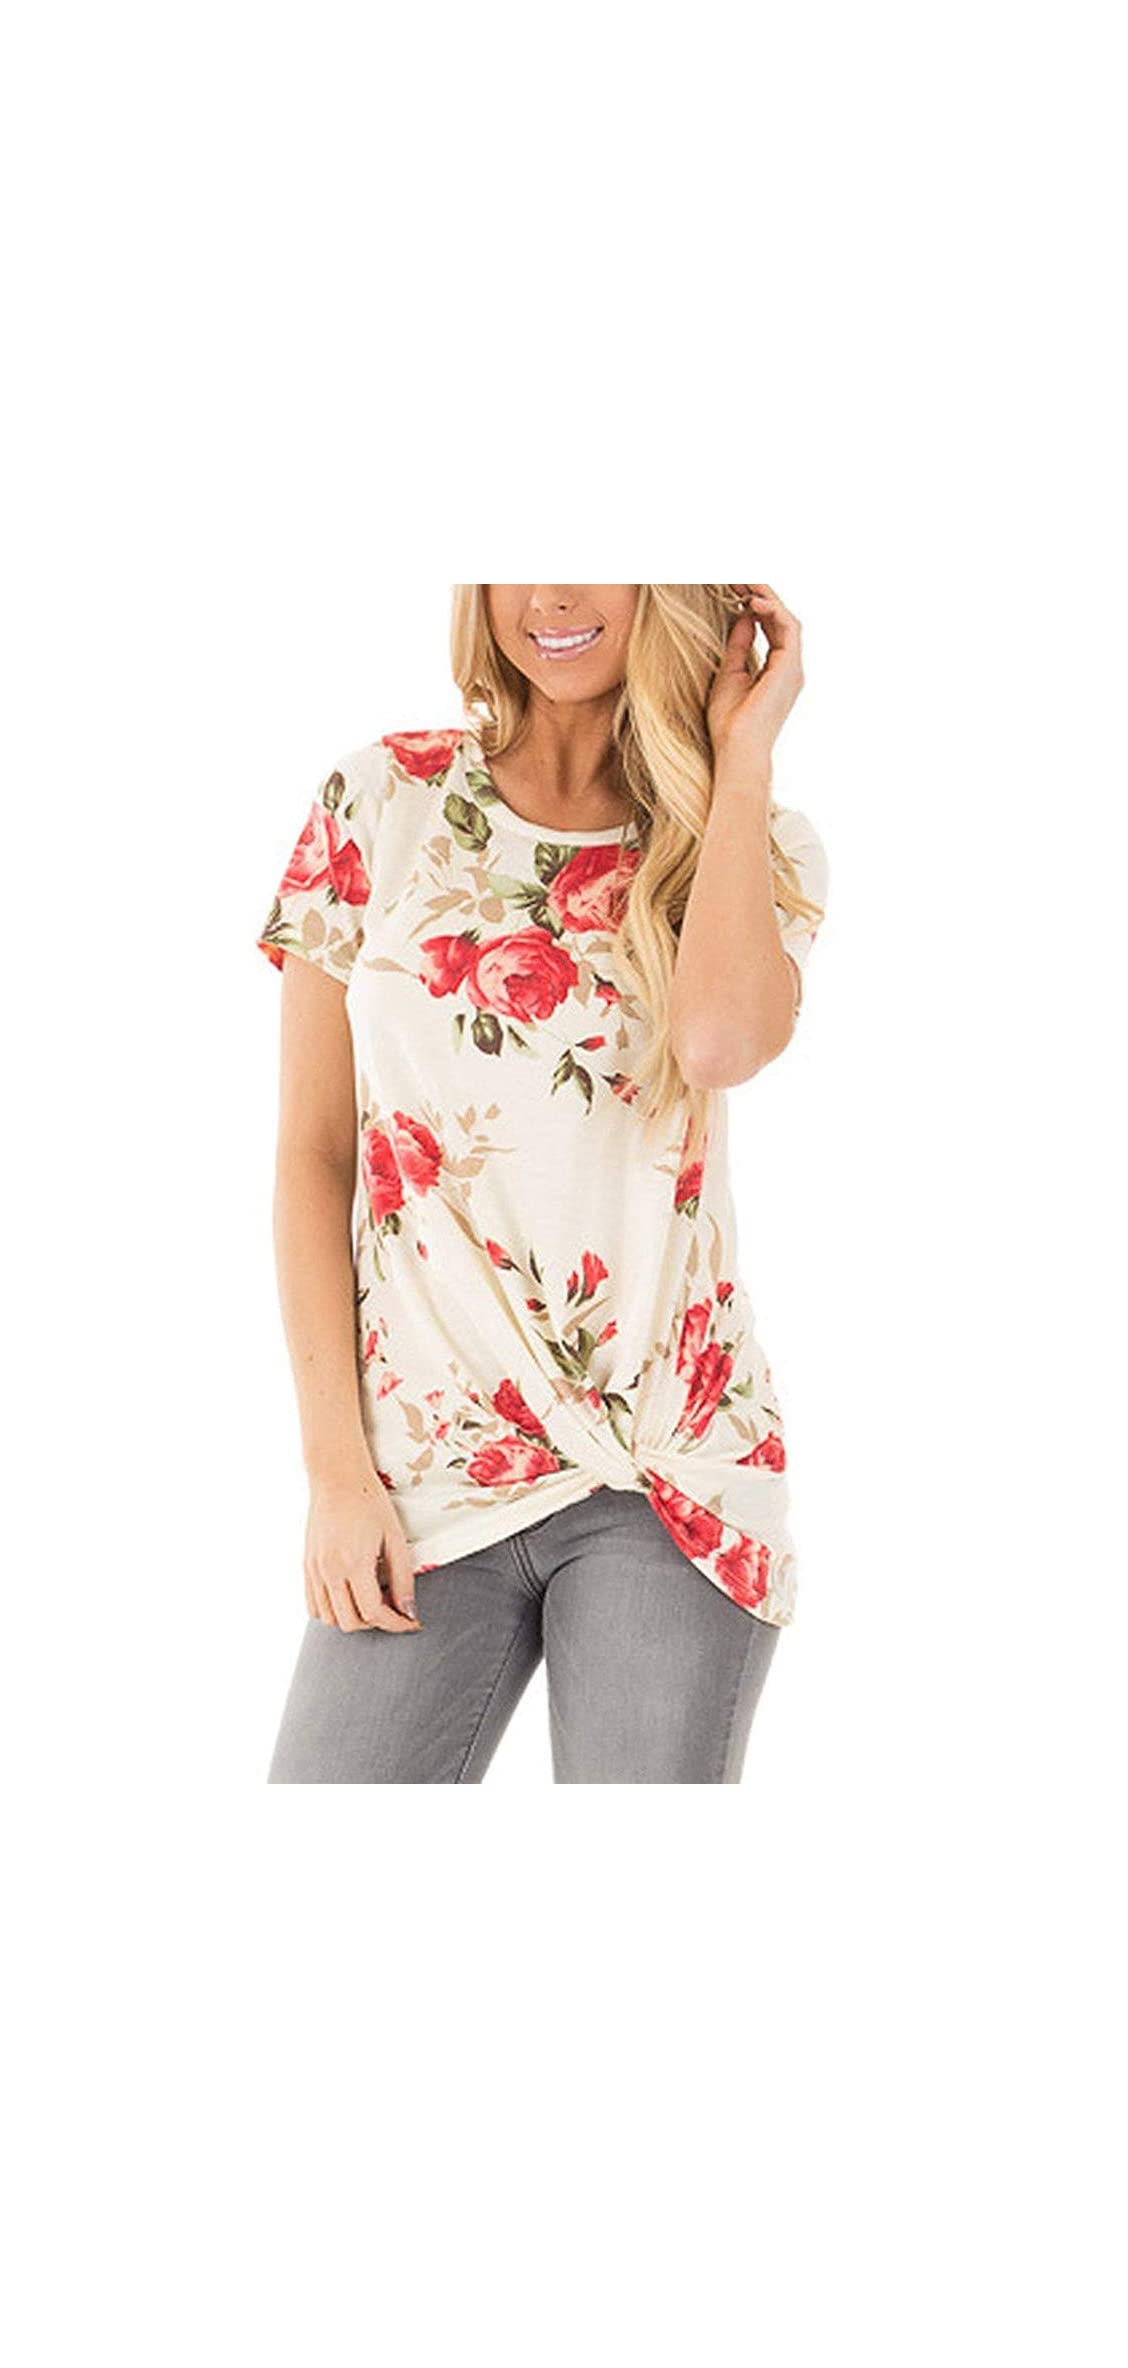 Womans Floral Tops Summer Boat Neck T Shirts Casual Juniors L